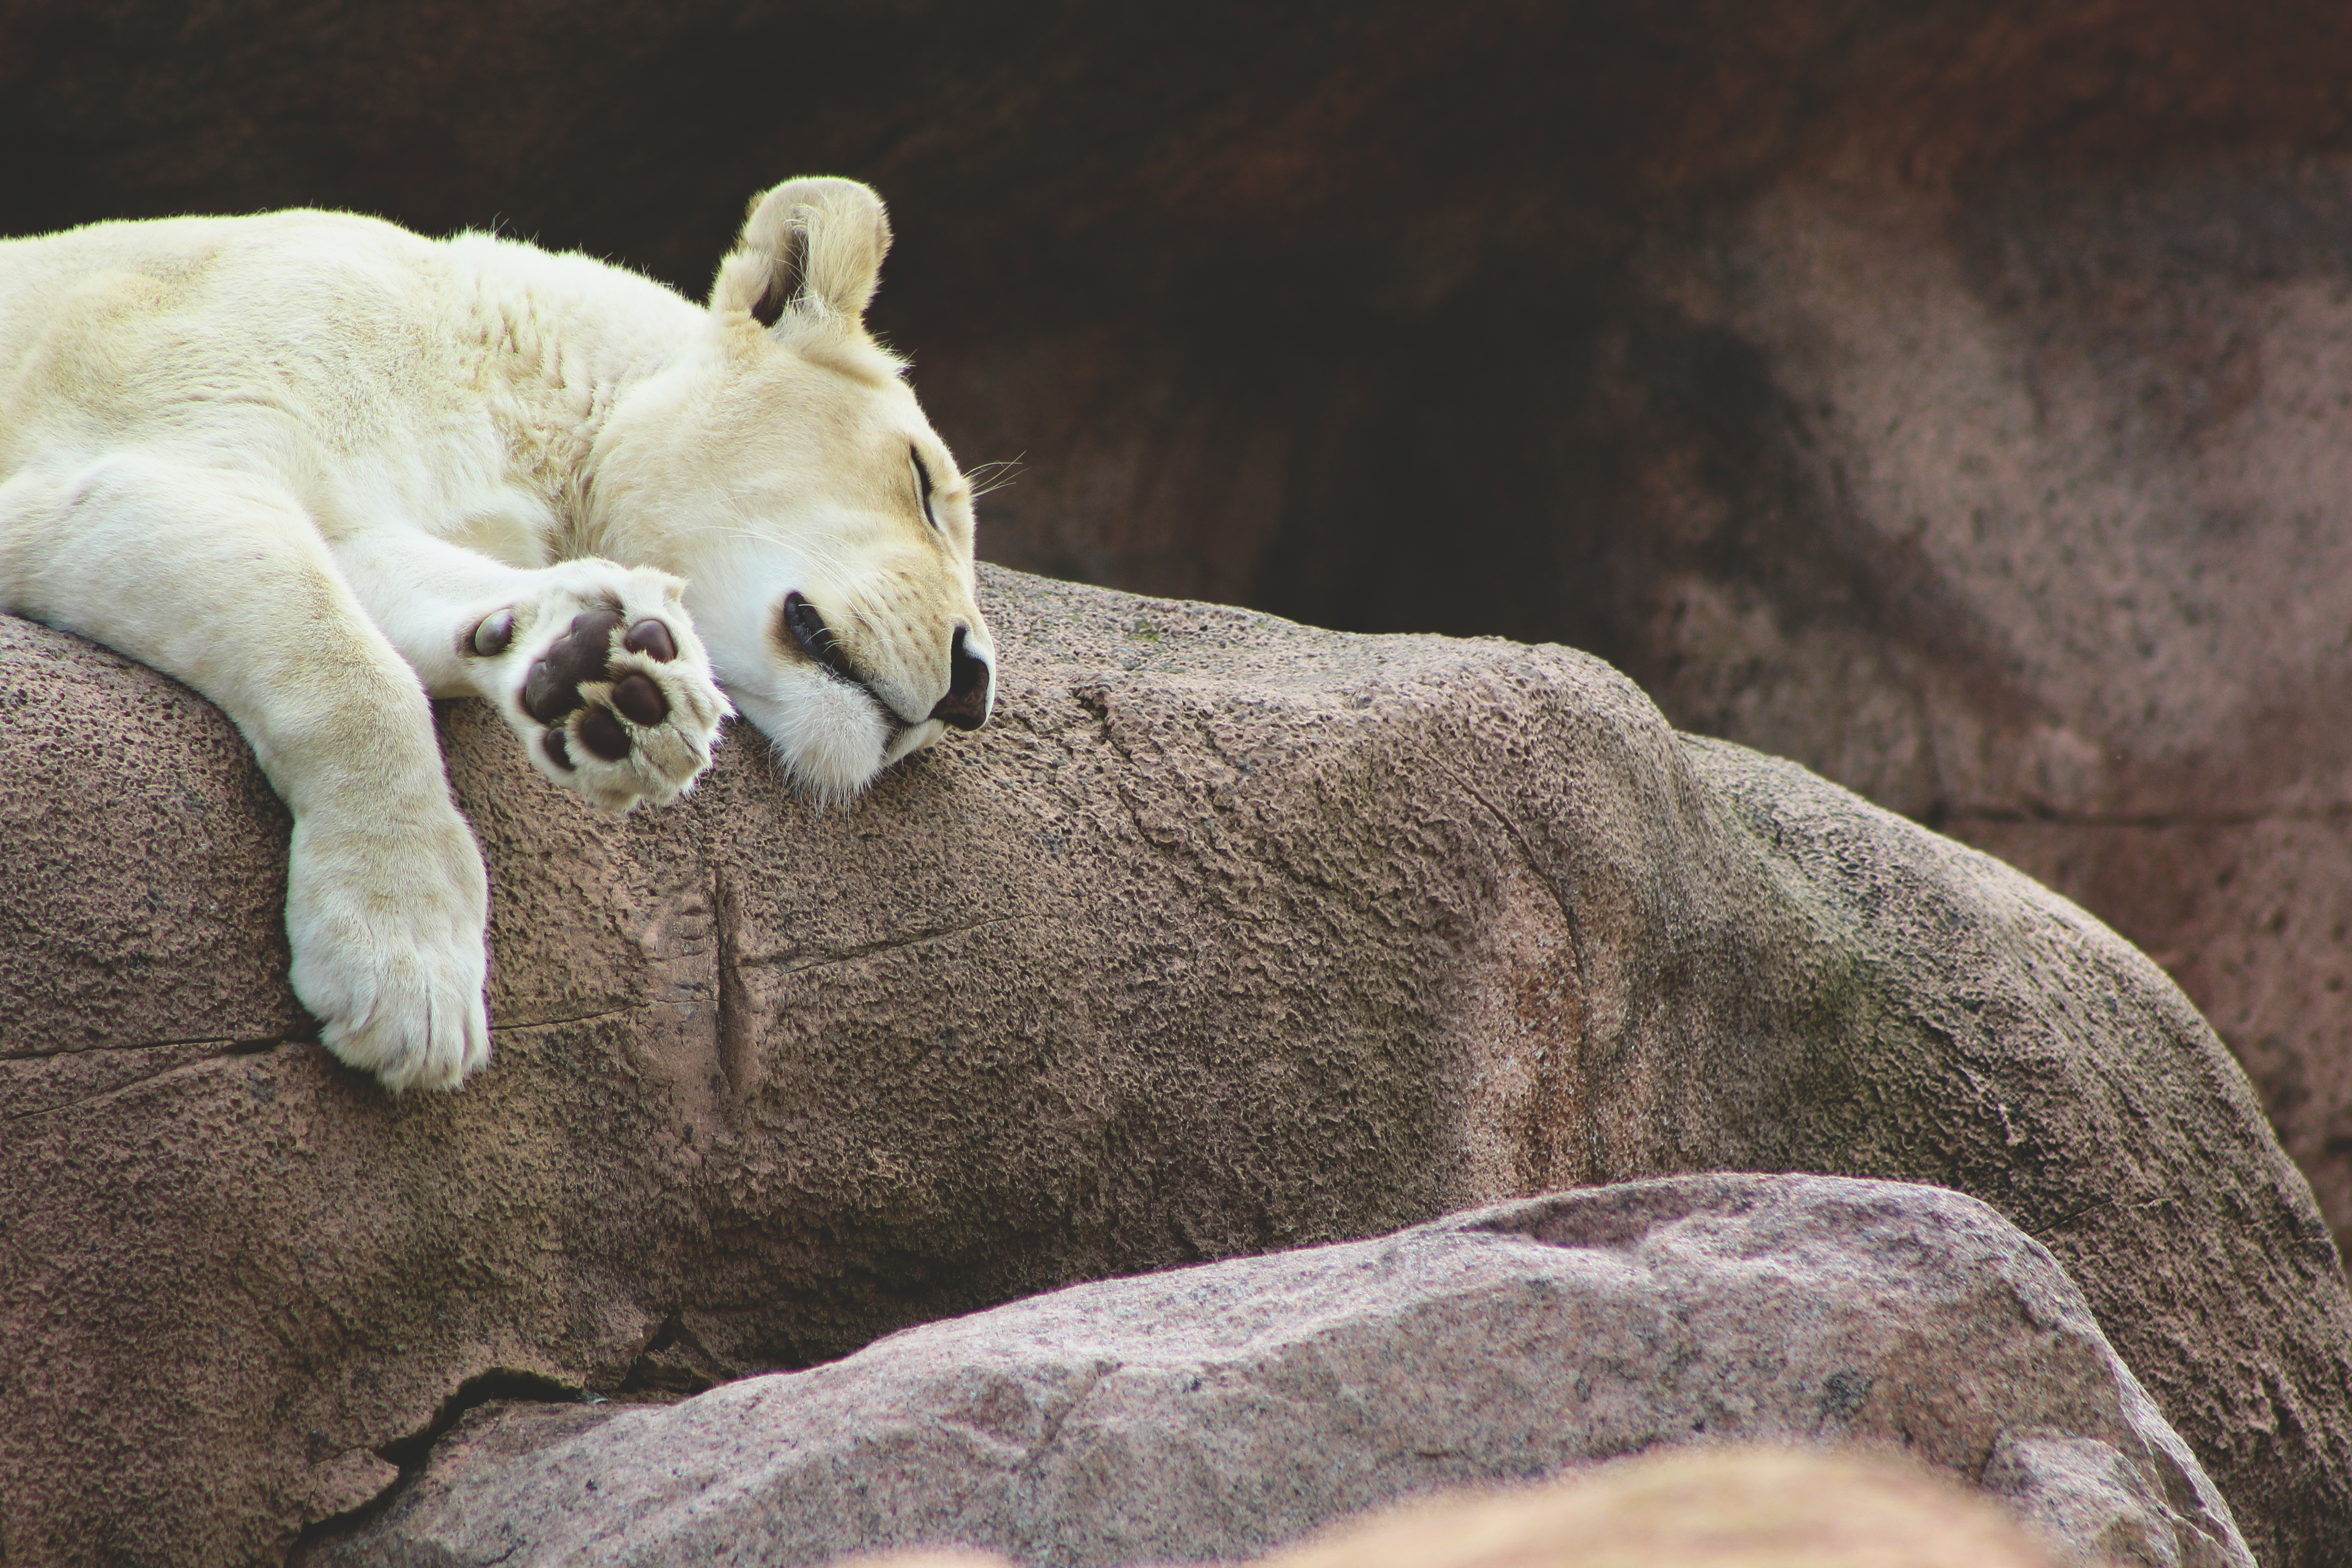 131304 download wallpaper Animals, Lioness, Predator, Asleep, Sleeps screensavers and pictures for free